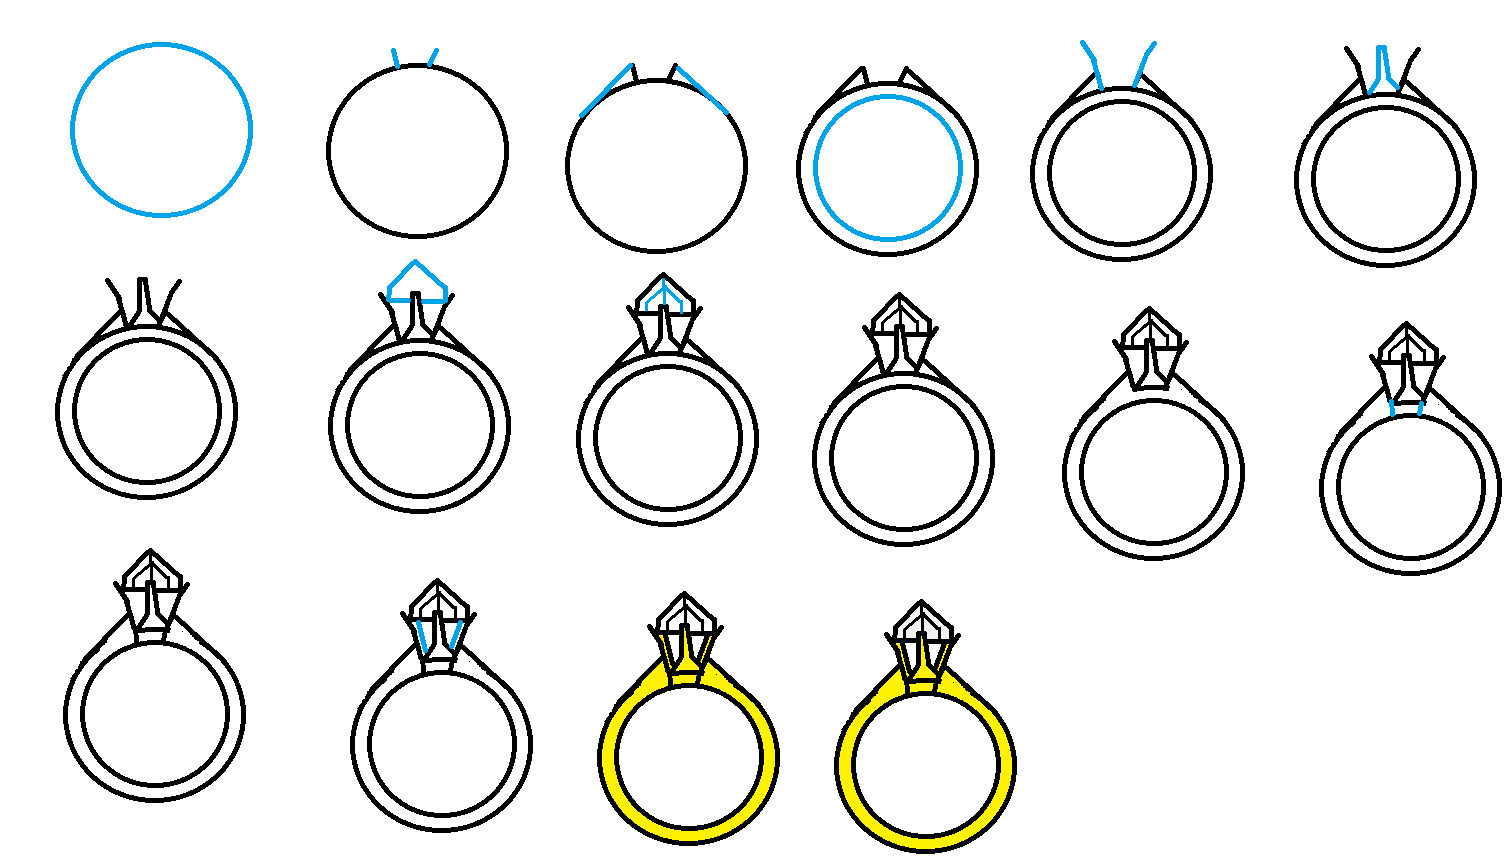 Drawn jewelry diamond ring Draw Find com/pictures1  Image